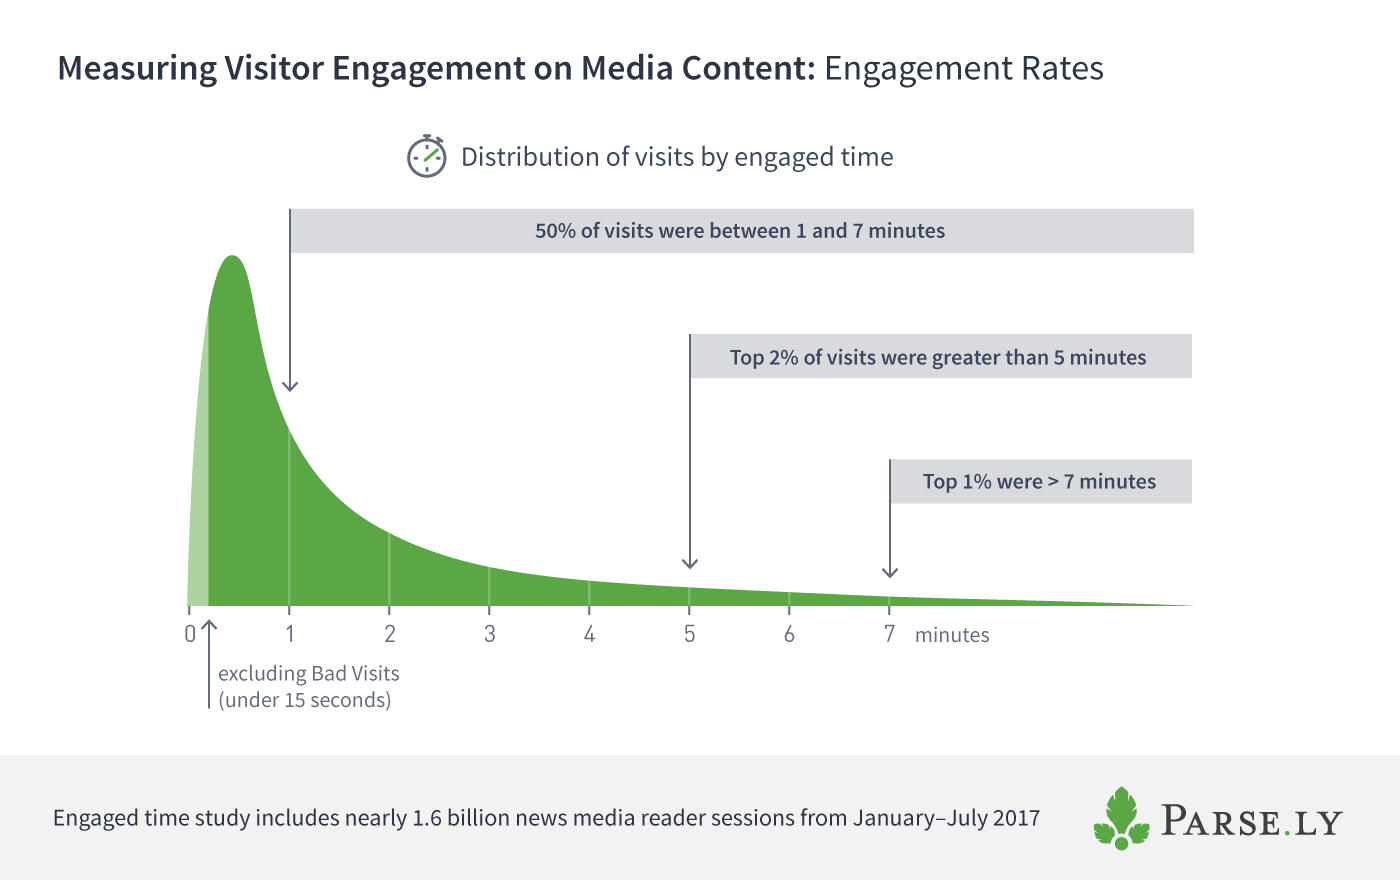 chart of engaged time distribution for content